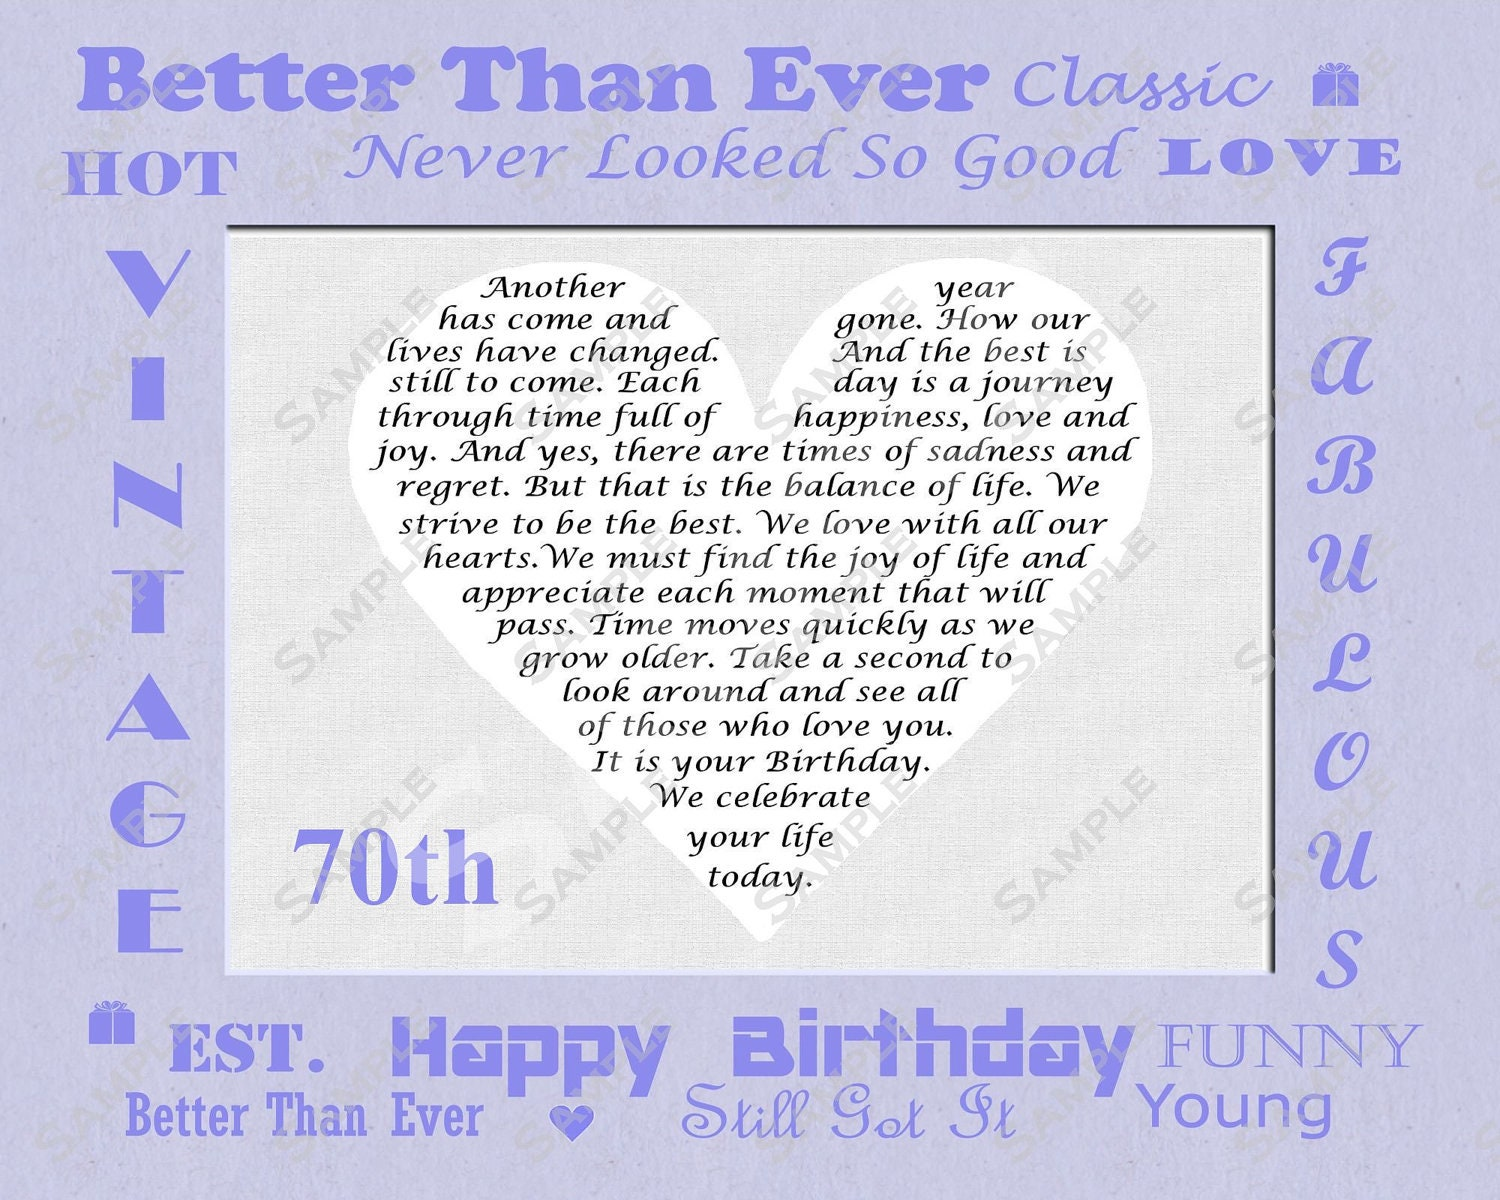 my 70th birthday speech Free examples of speeches to say on birthday's hi,i want a speech on my birthday but i do not know what to begin with or what to say could you please help me out.